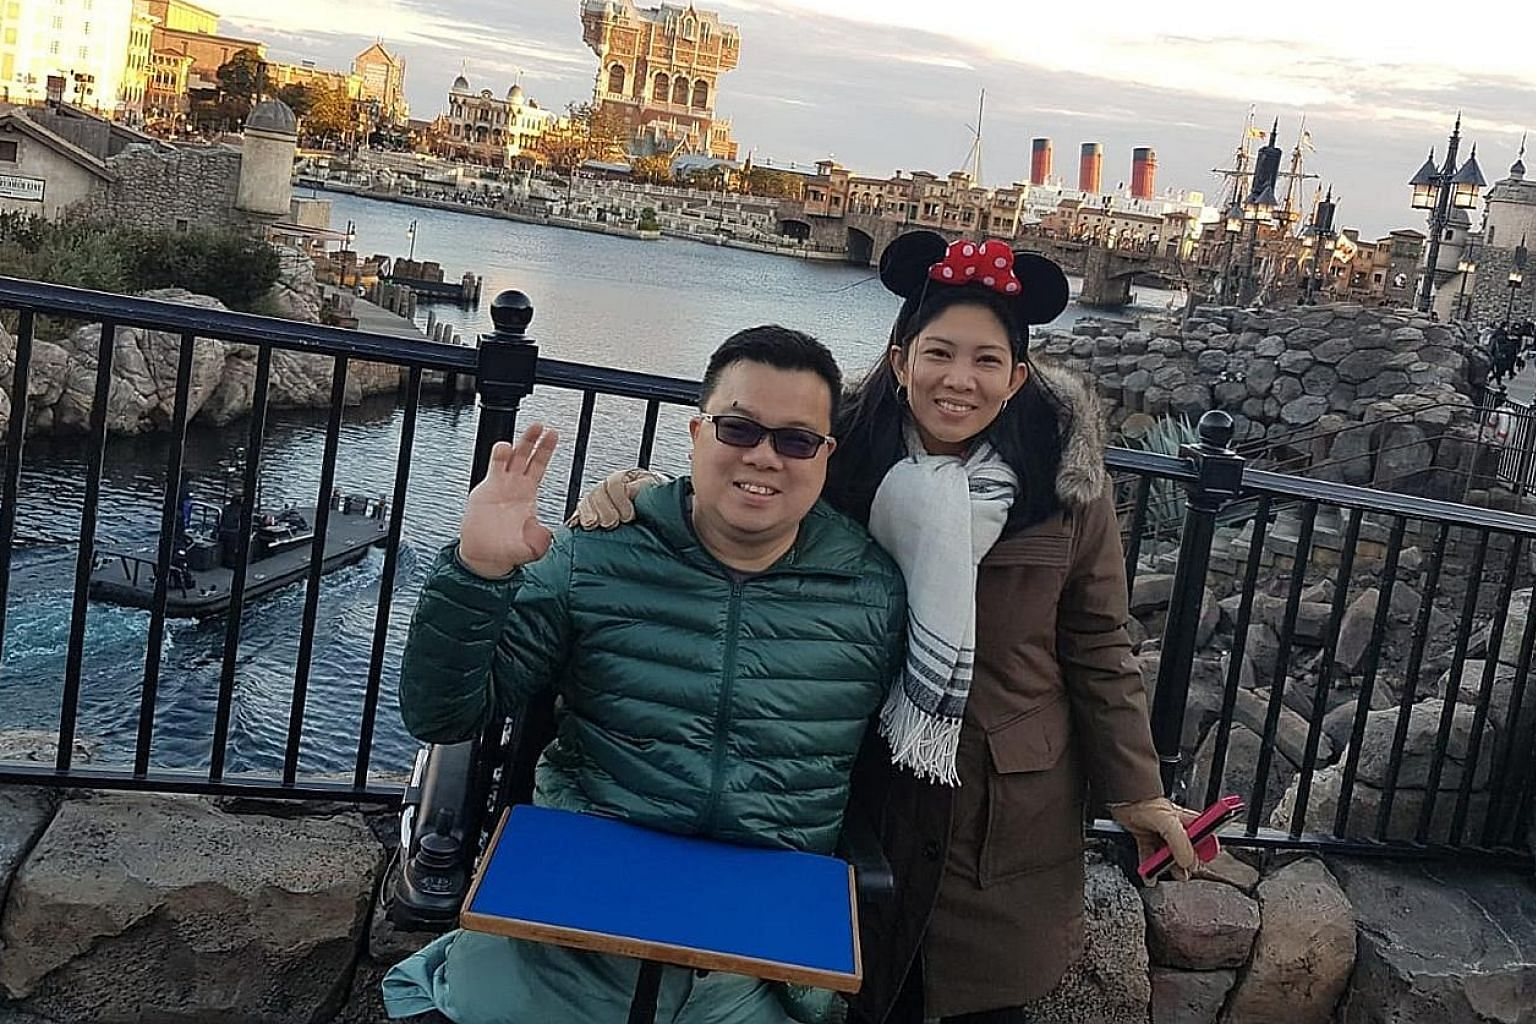 Jason Chee and his fiancee Nonie Dumas on one of their trips. He announced their engagement on Monday.